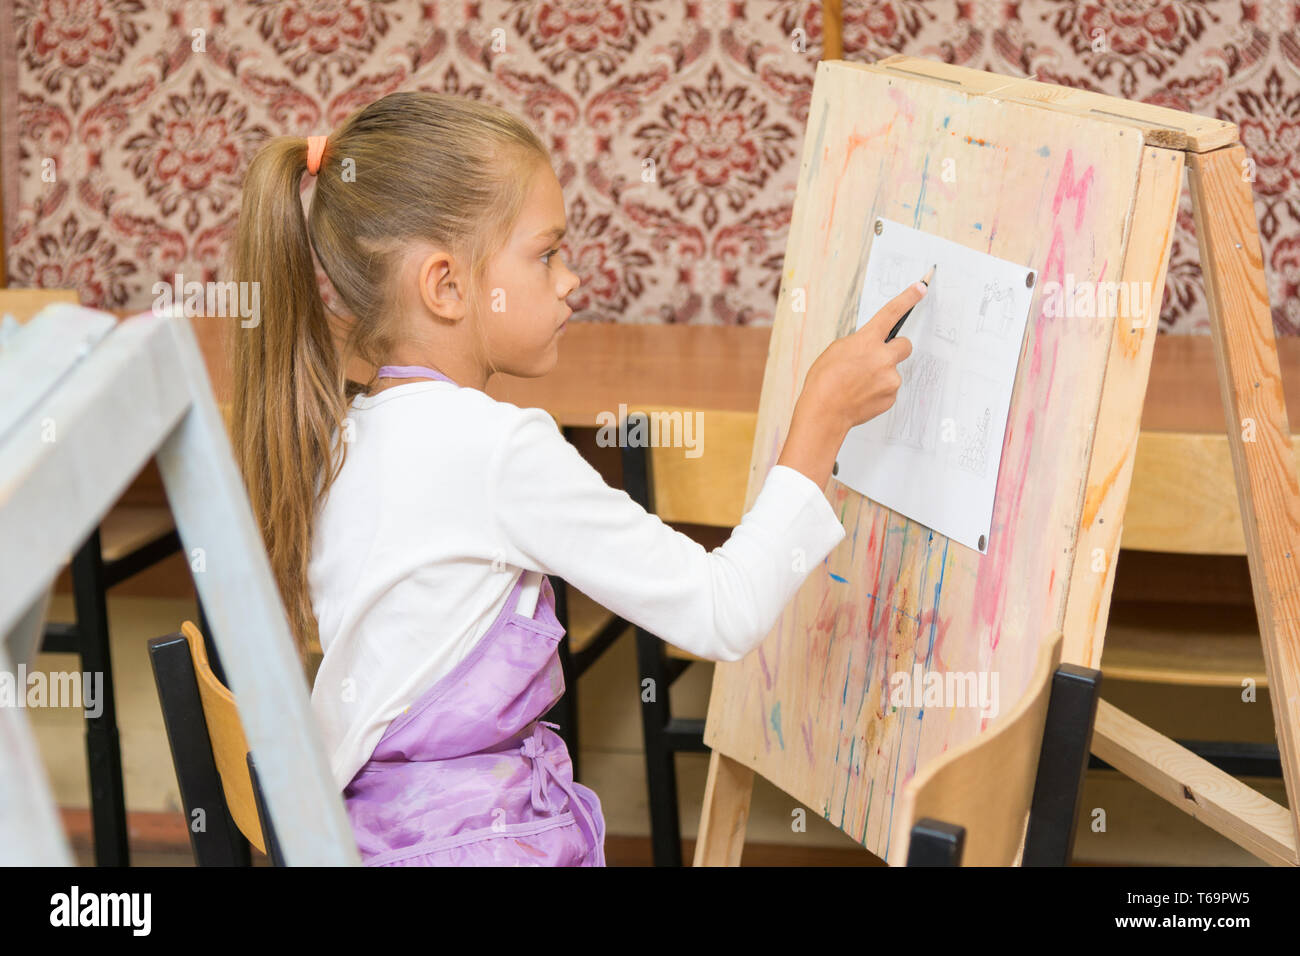 Girl paints on an easel in the drawing lesson - Stock Image